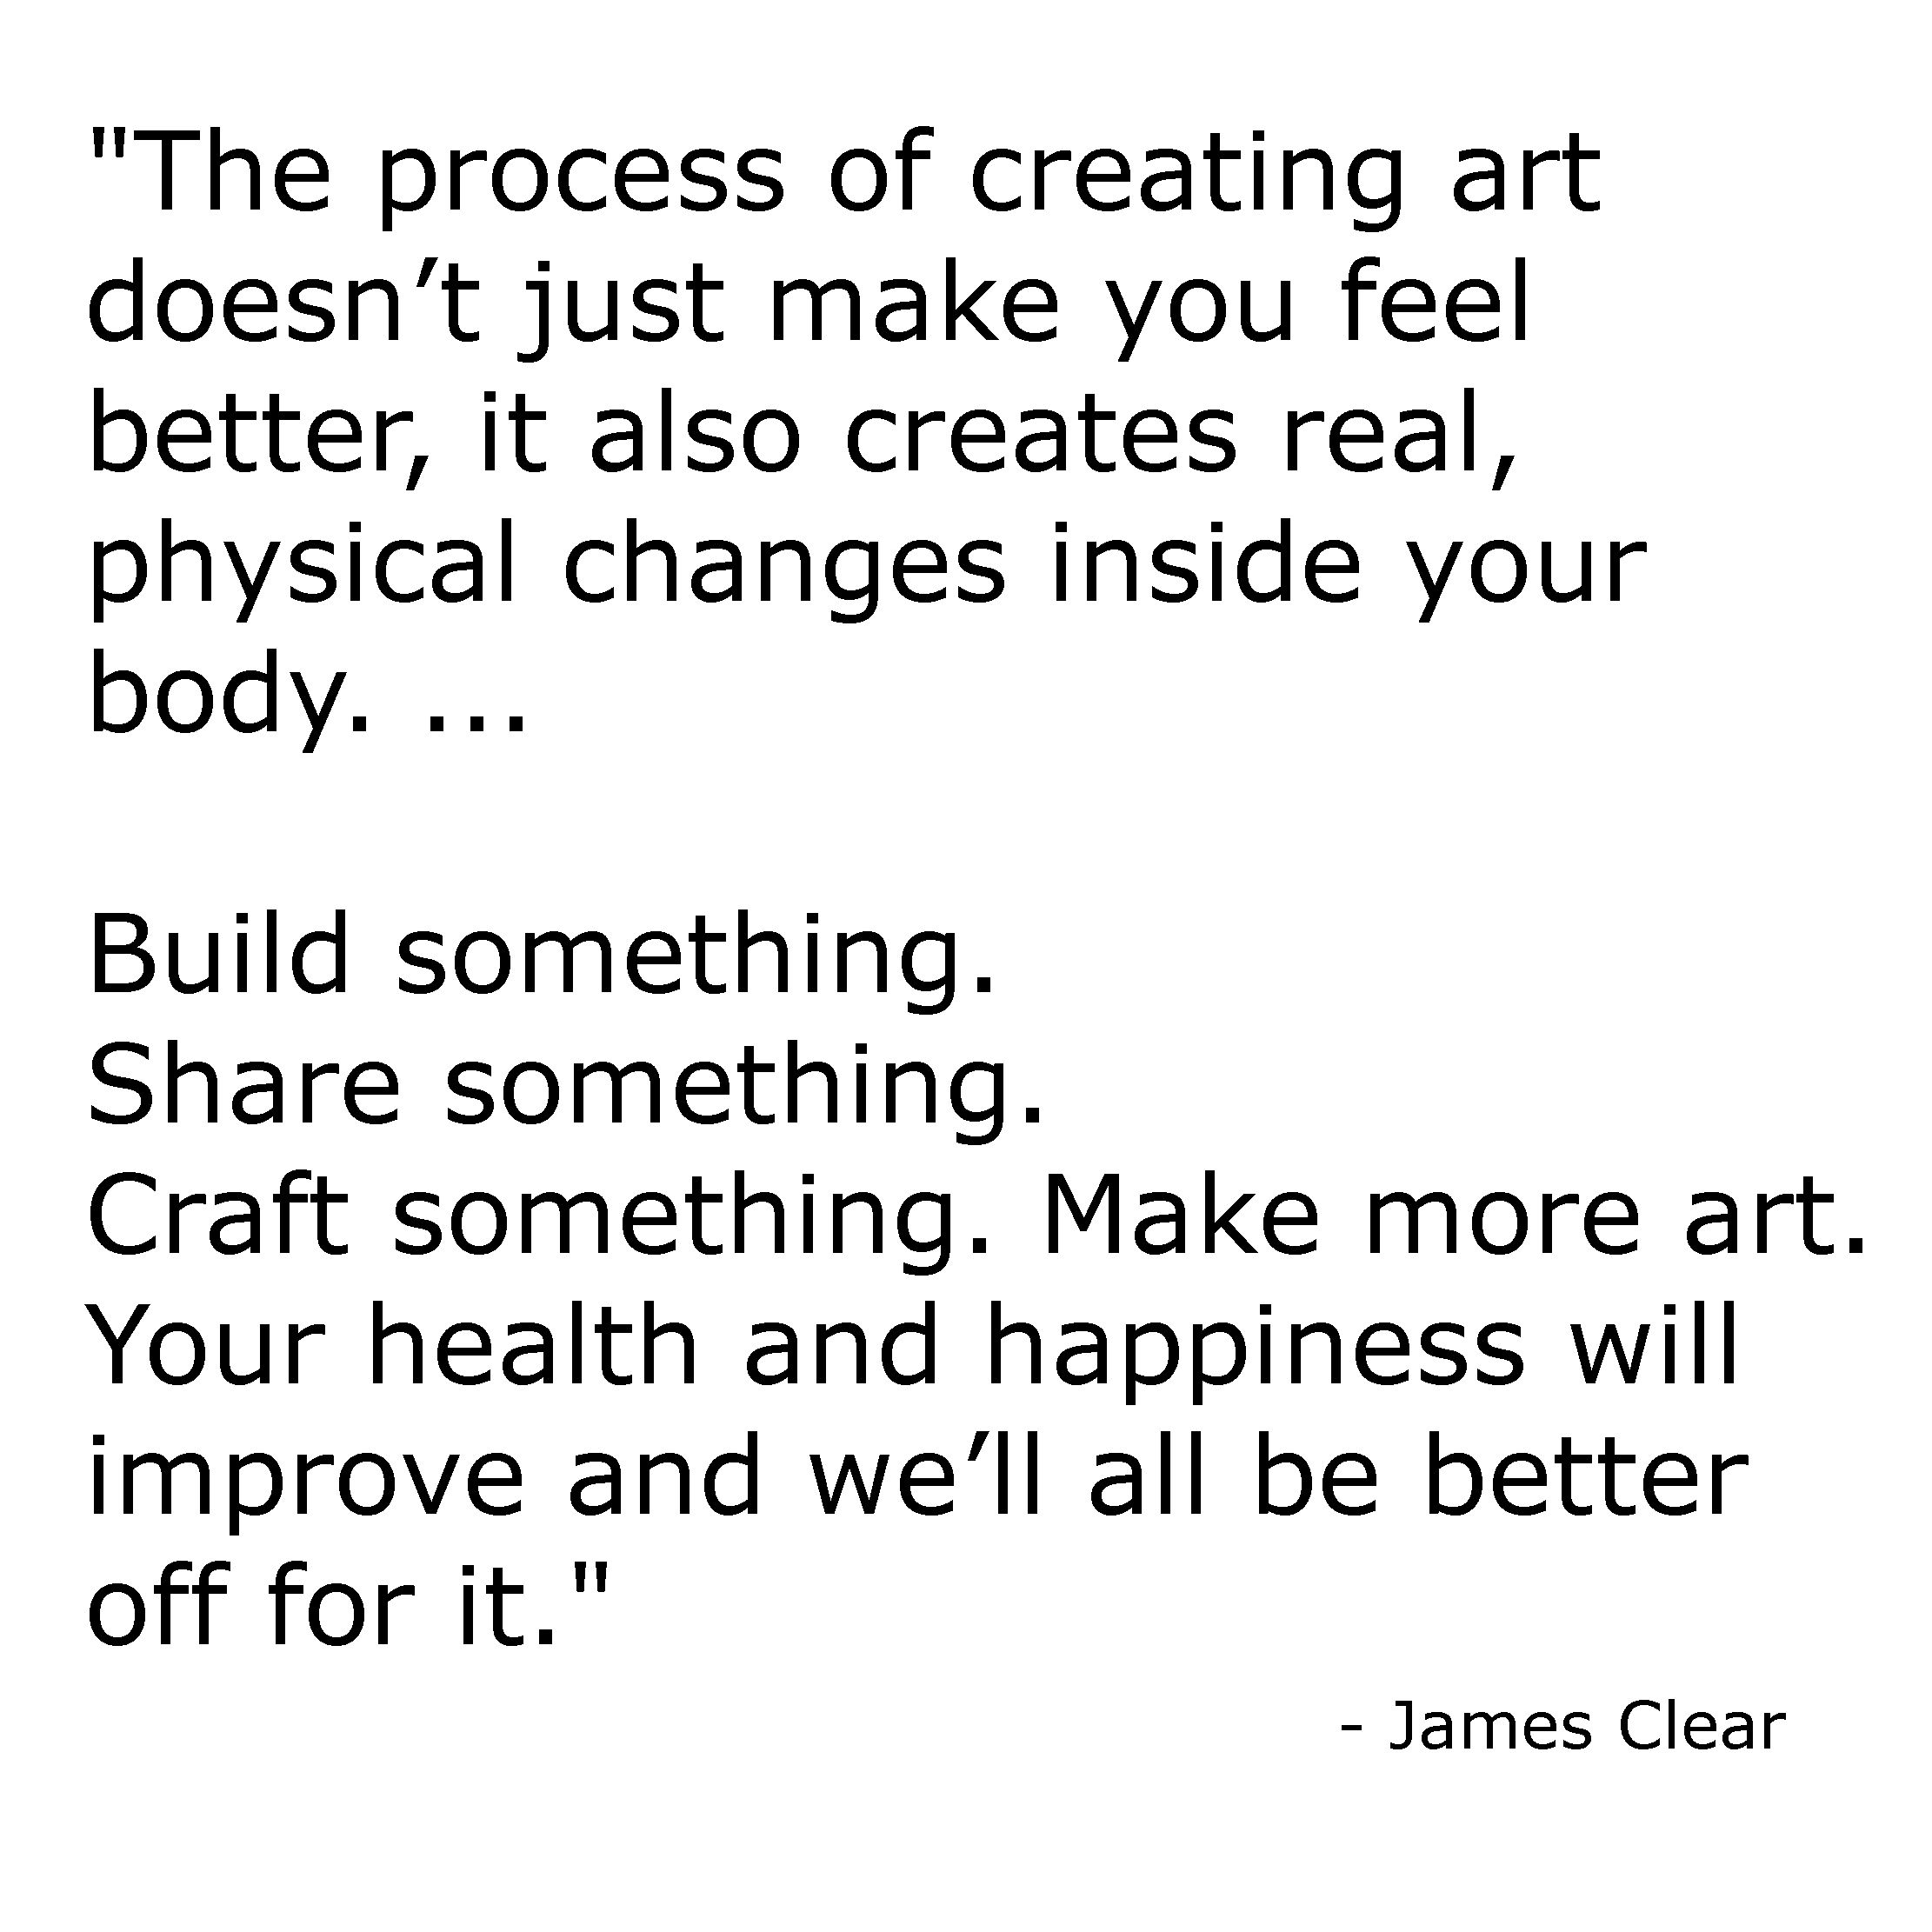 """The process of creating art doesn't just make you feel better, it also creates real, physical changes inside your body. ... Build something. Share something. Craft something. Make more art. Your health and happiness will improve and we'll all be better off for it.""  - James Clear"